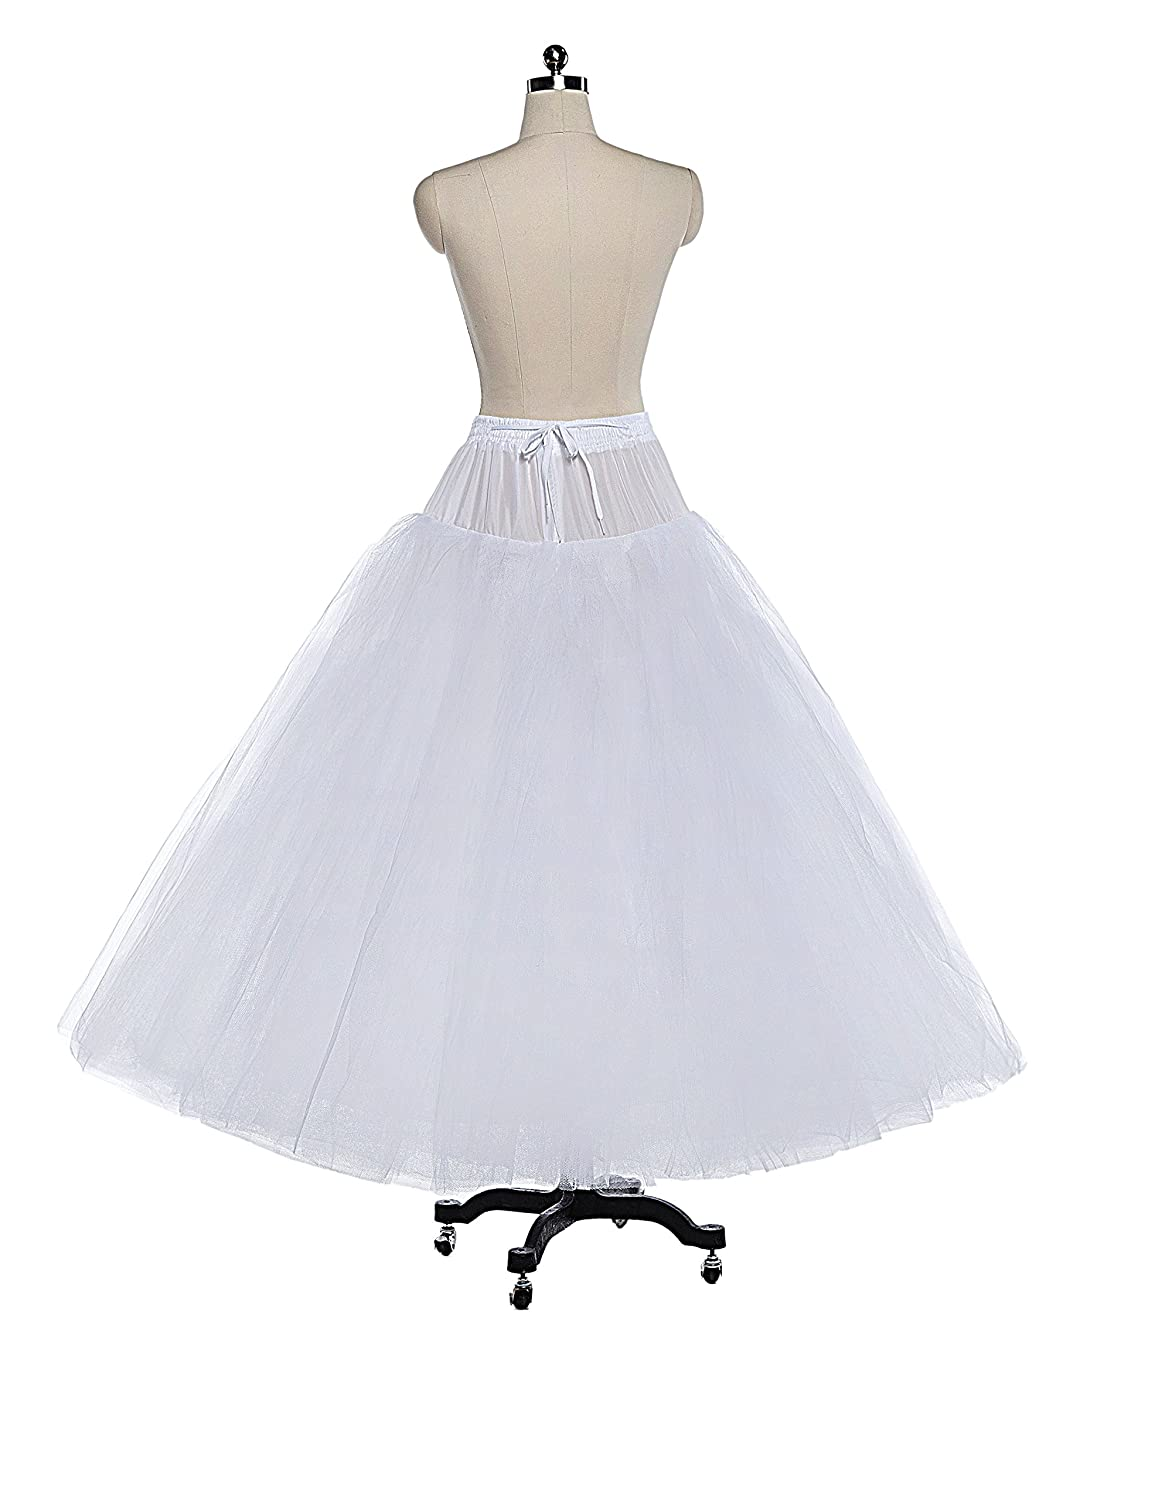 Amazon.com: 8 Layer Tulle Hoopless Bridal Petticoat Ball Gown ...